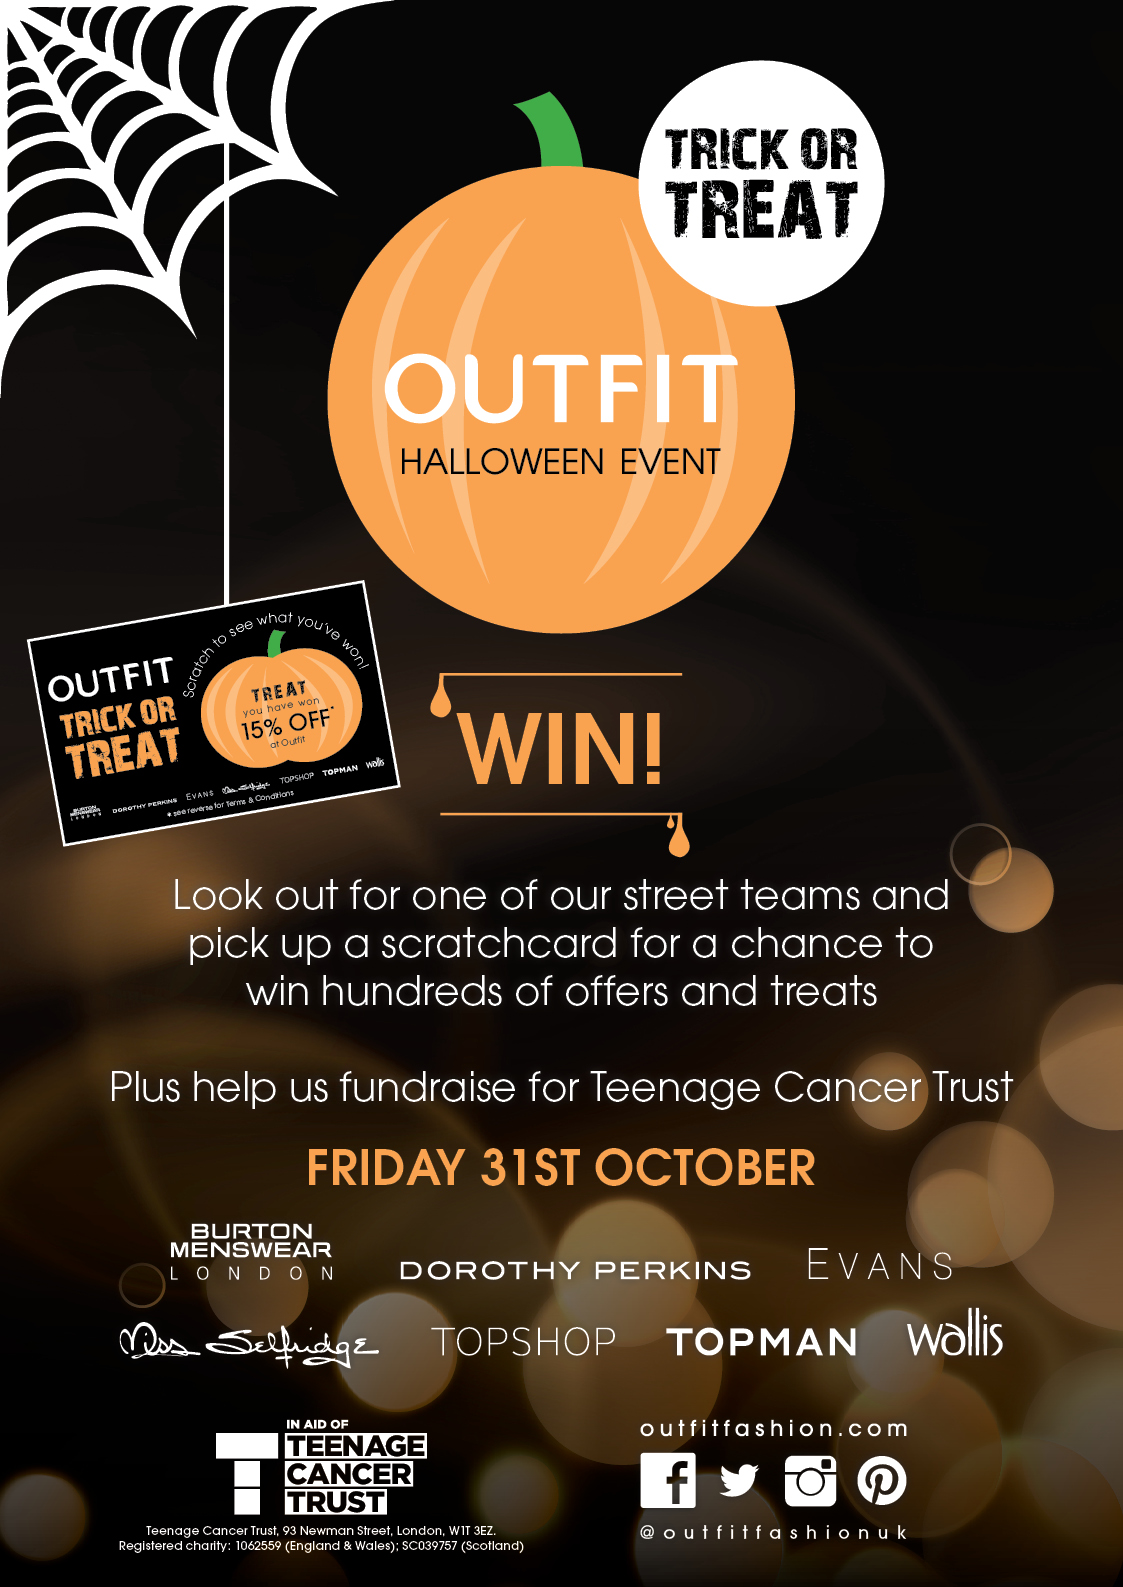 'Trick or Treat' Event on the 31st October 2014 in Outfit, New Square Shopping Centre